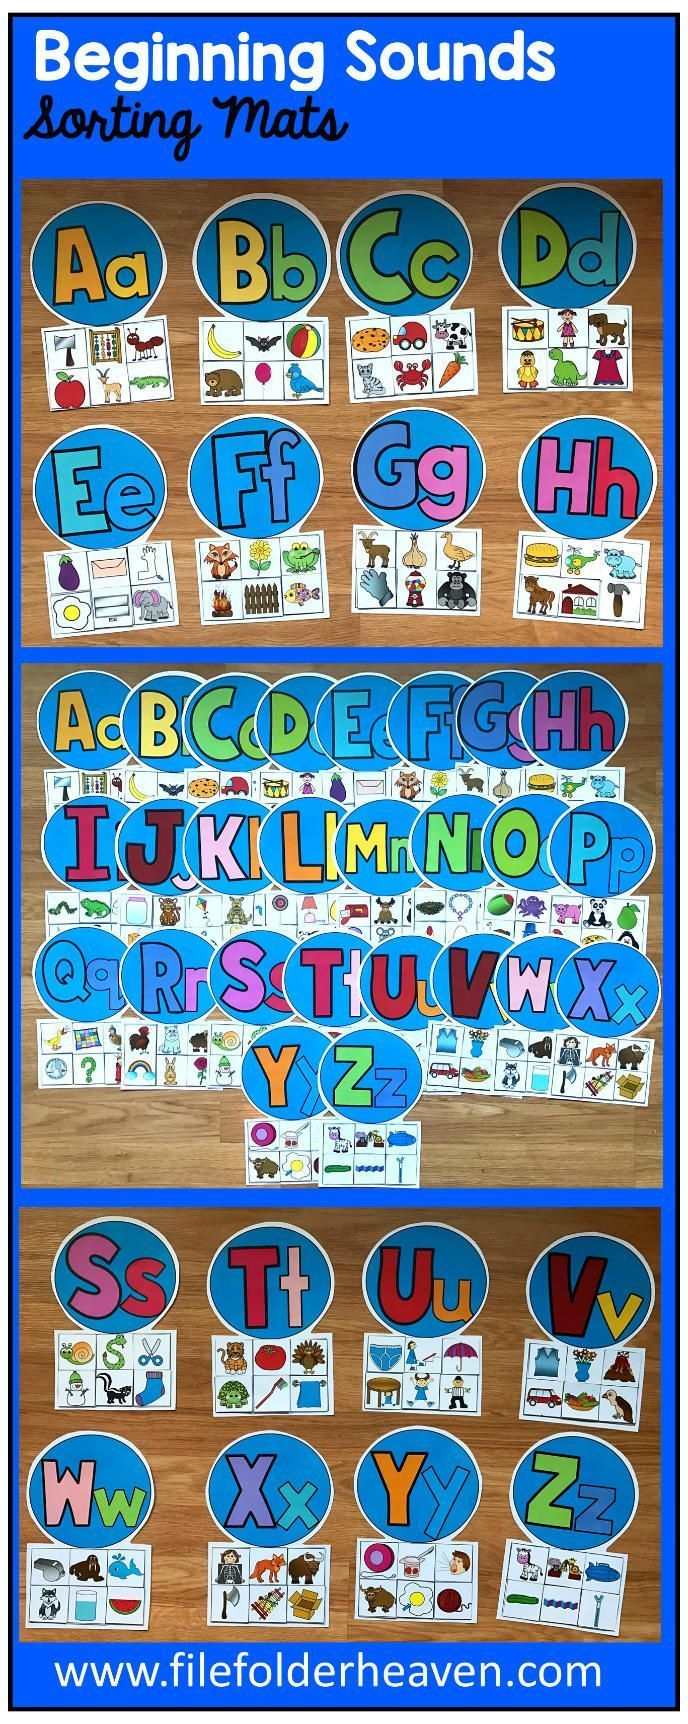 """These Beginning Sounds Sorting Mats include 26 unique sorting mats, one for each letter of the alphabet.   In these activities, students sort pictures by beginning sound. For example in the """"A"""" mat, students sort an ant, apple, abacus, anteater, alligator and ax into the mat."""